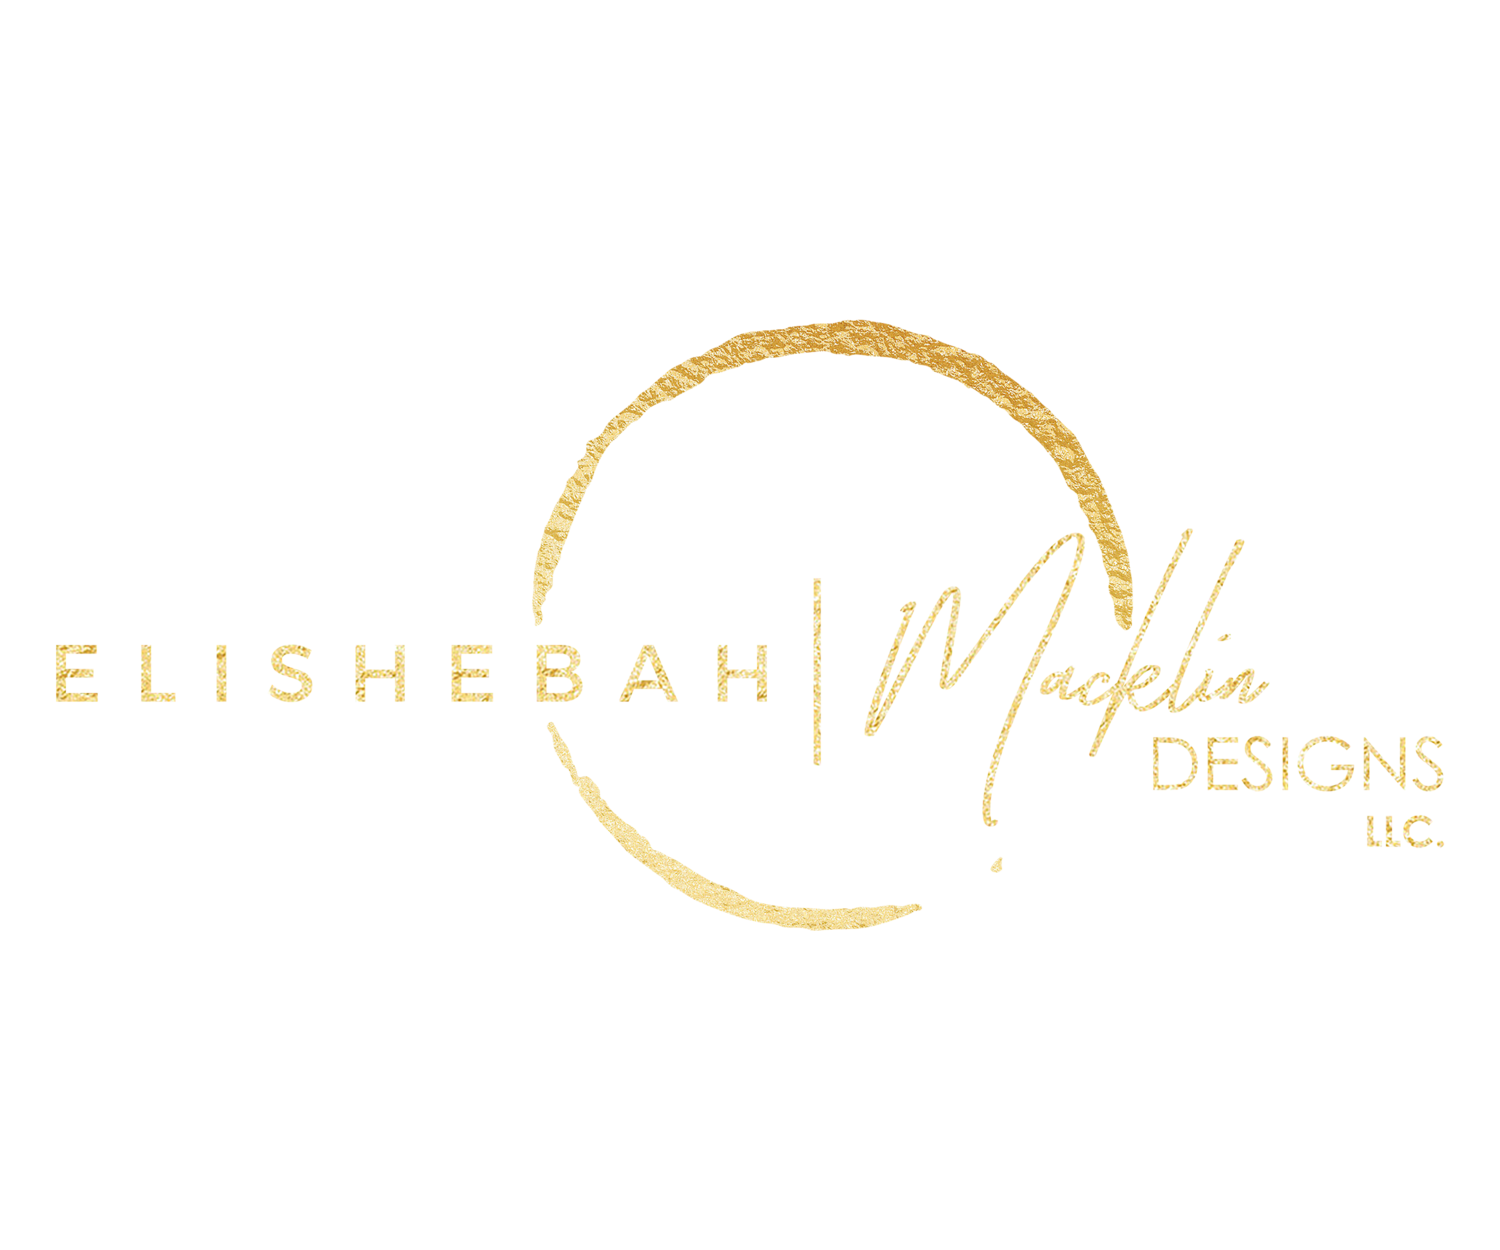 Elishebah Macklin Designs